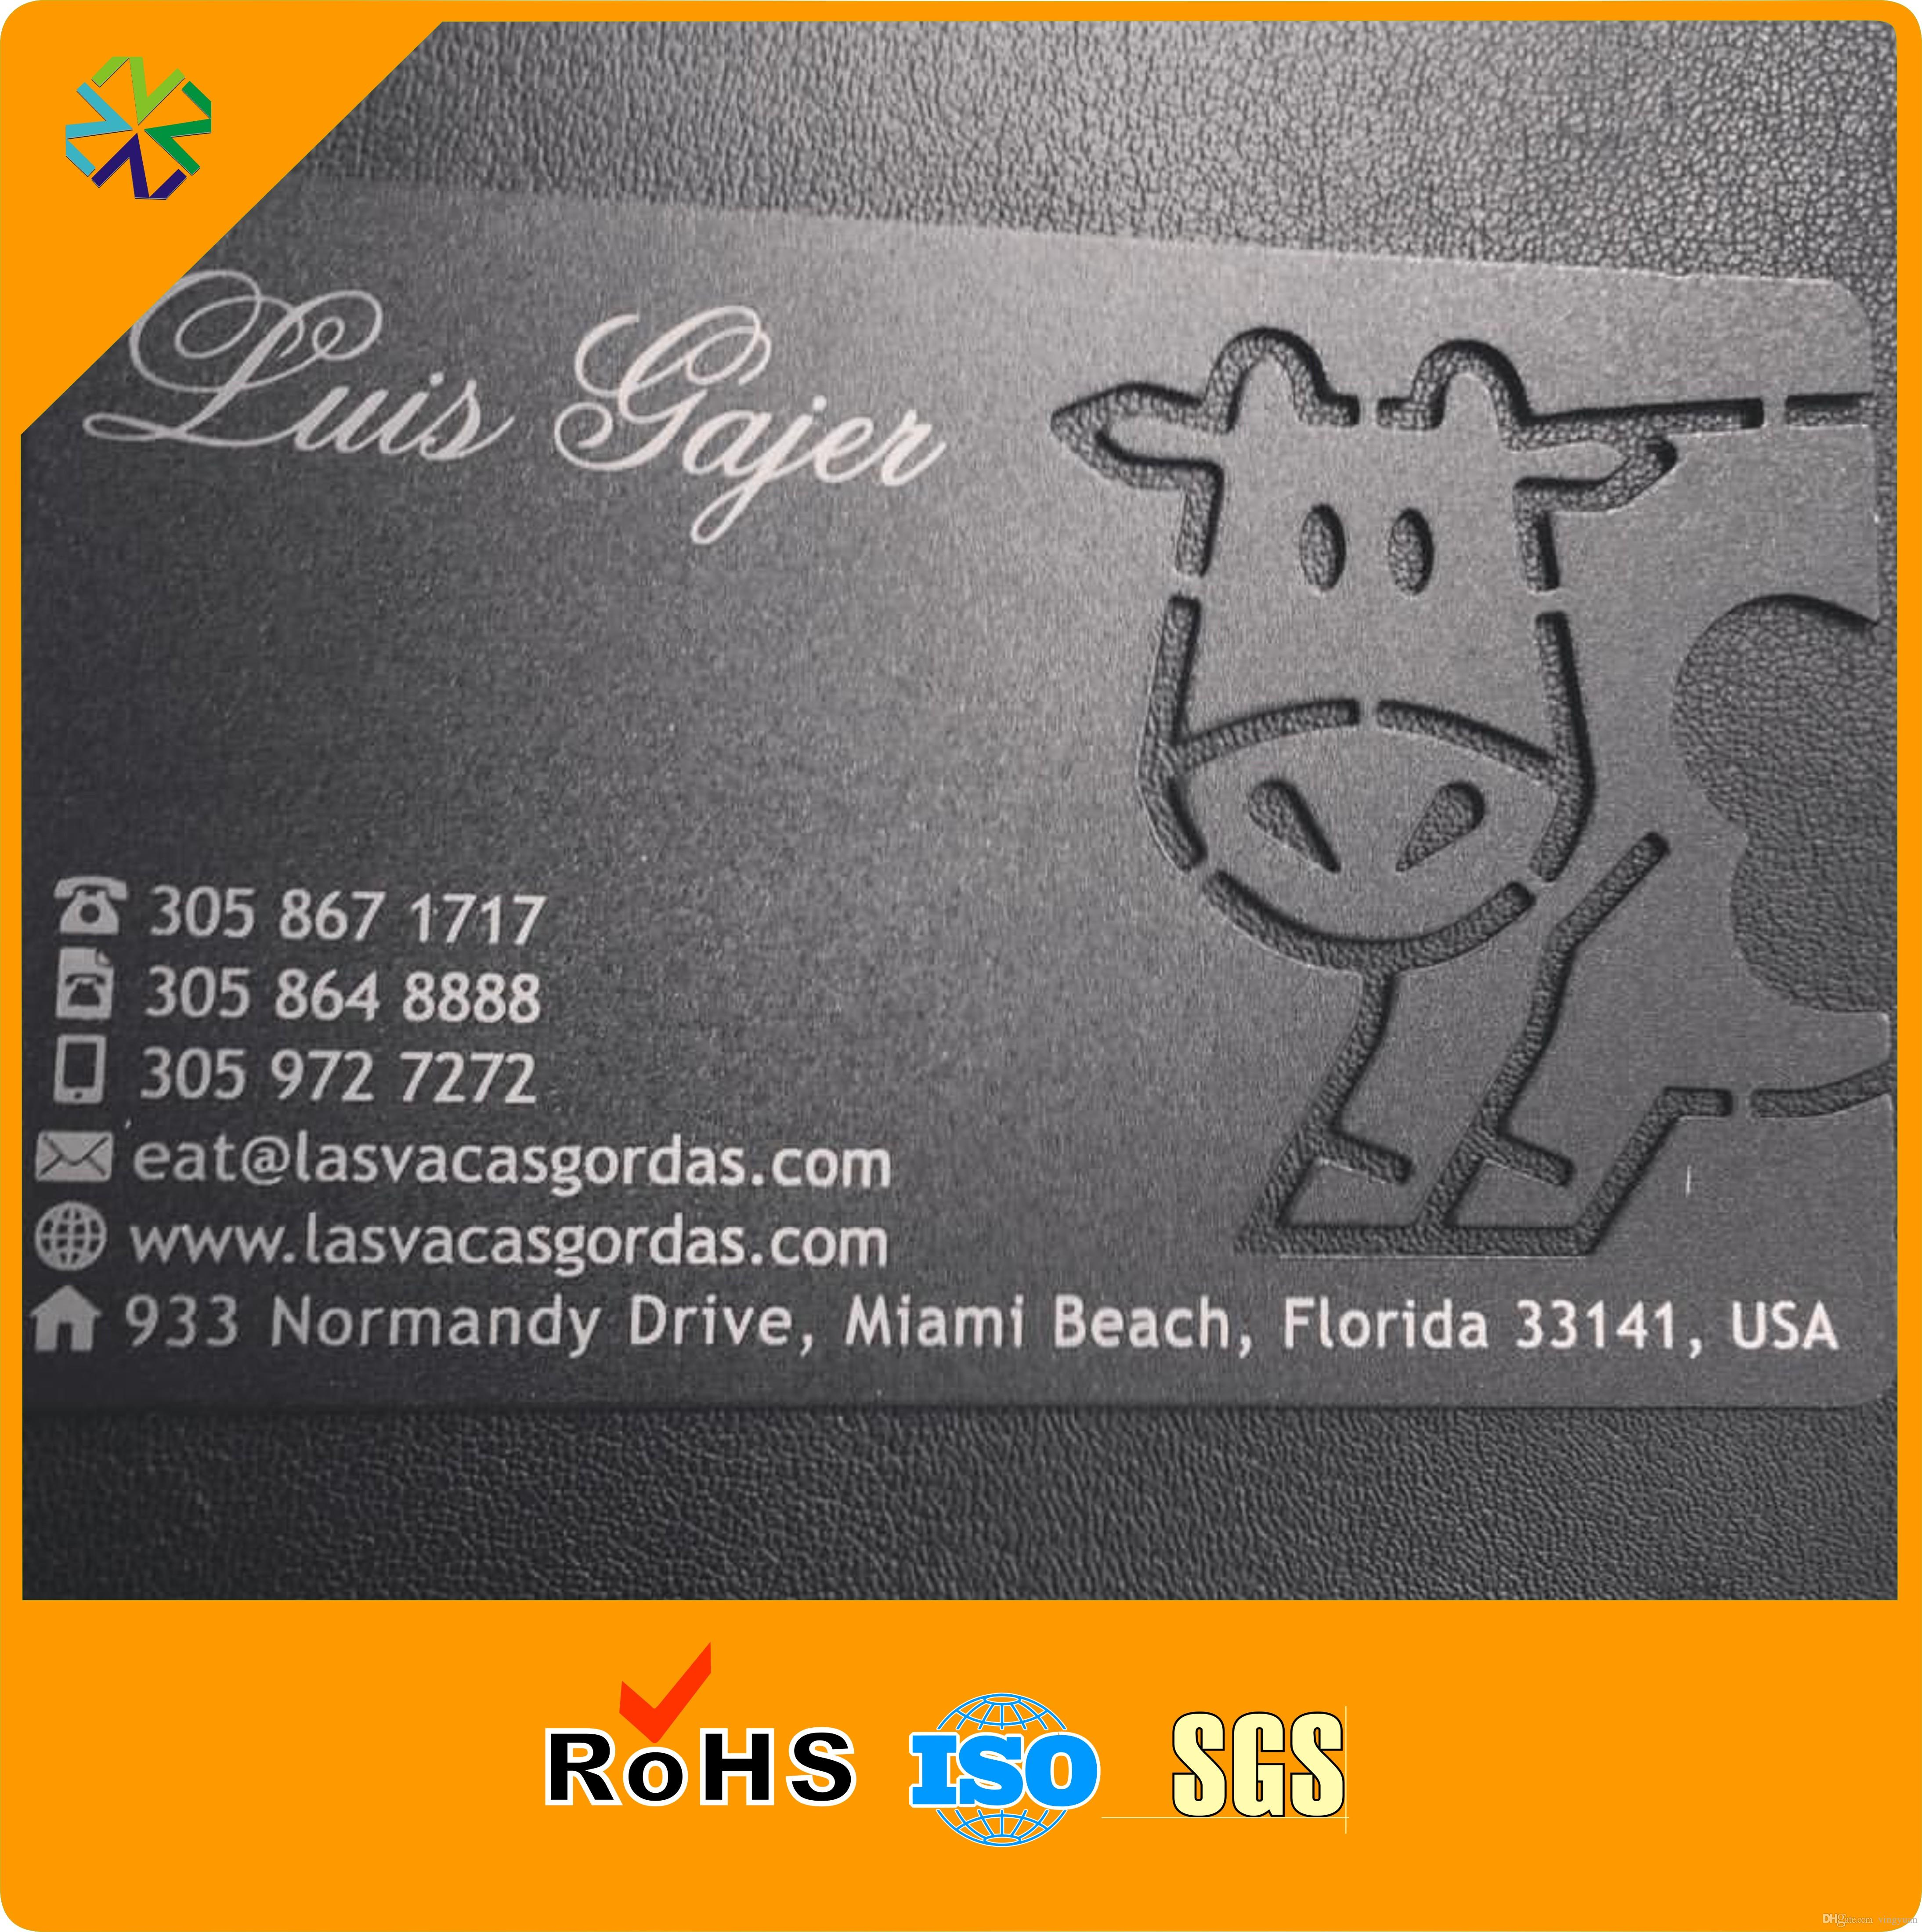 Luxury Metal Visiting Steel Business Card,cut out Metal Business ...